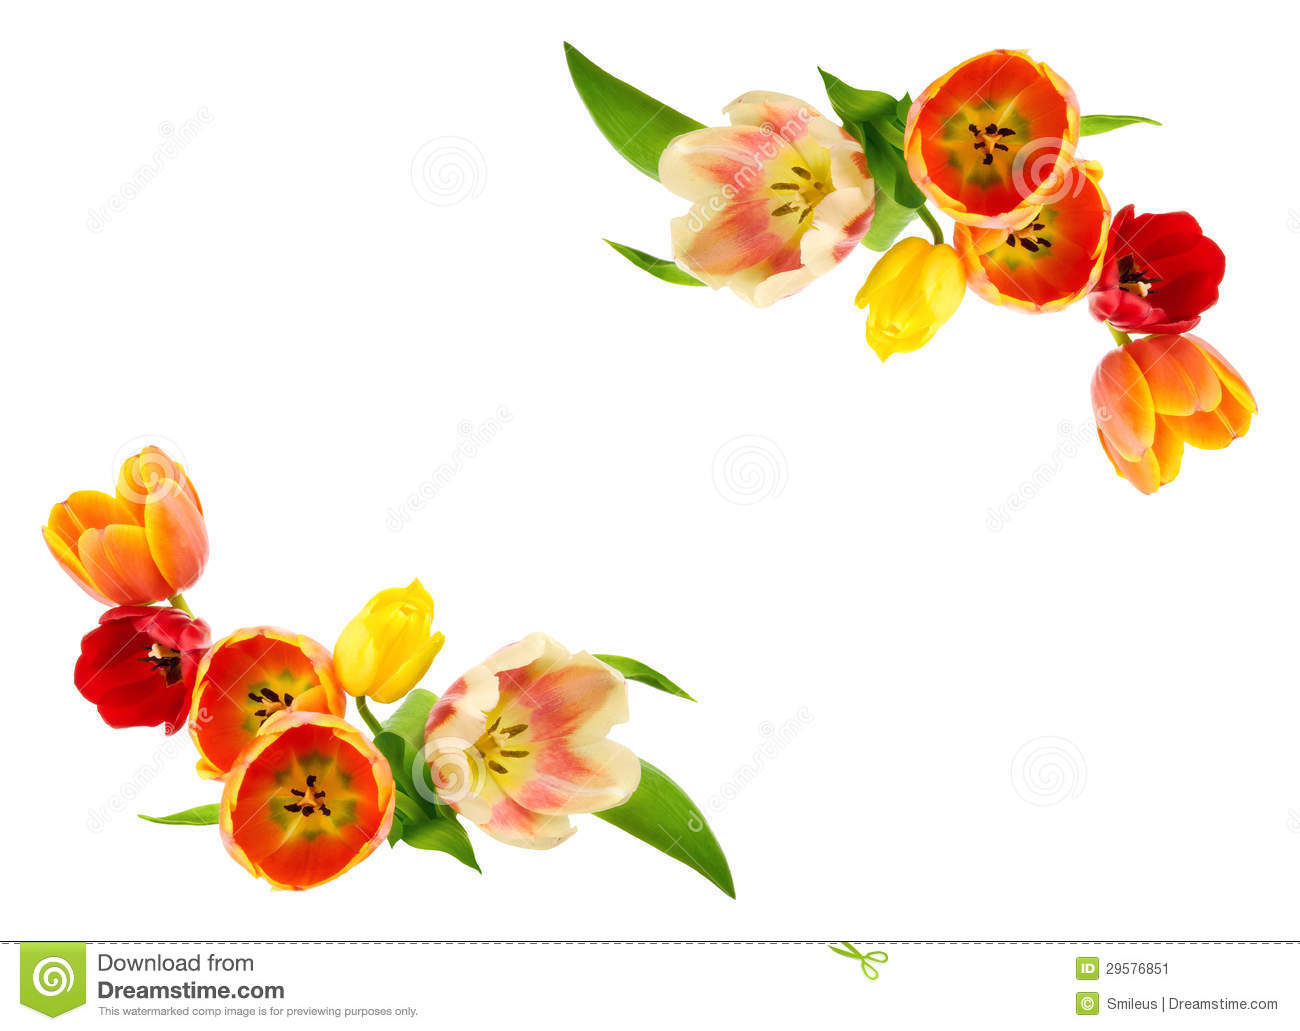 Tulips bulding an ornamental border on white copy space.